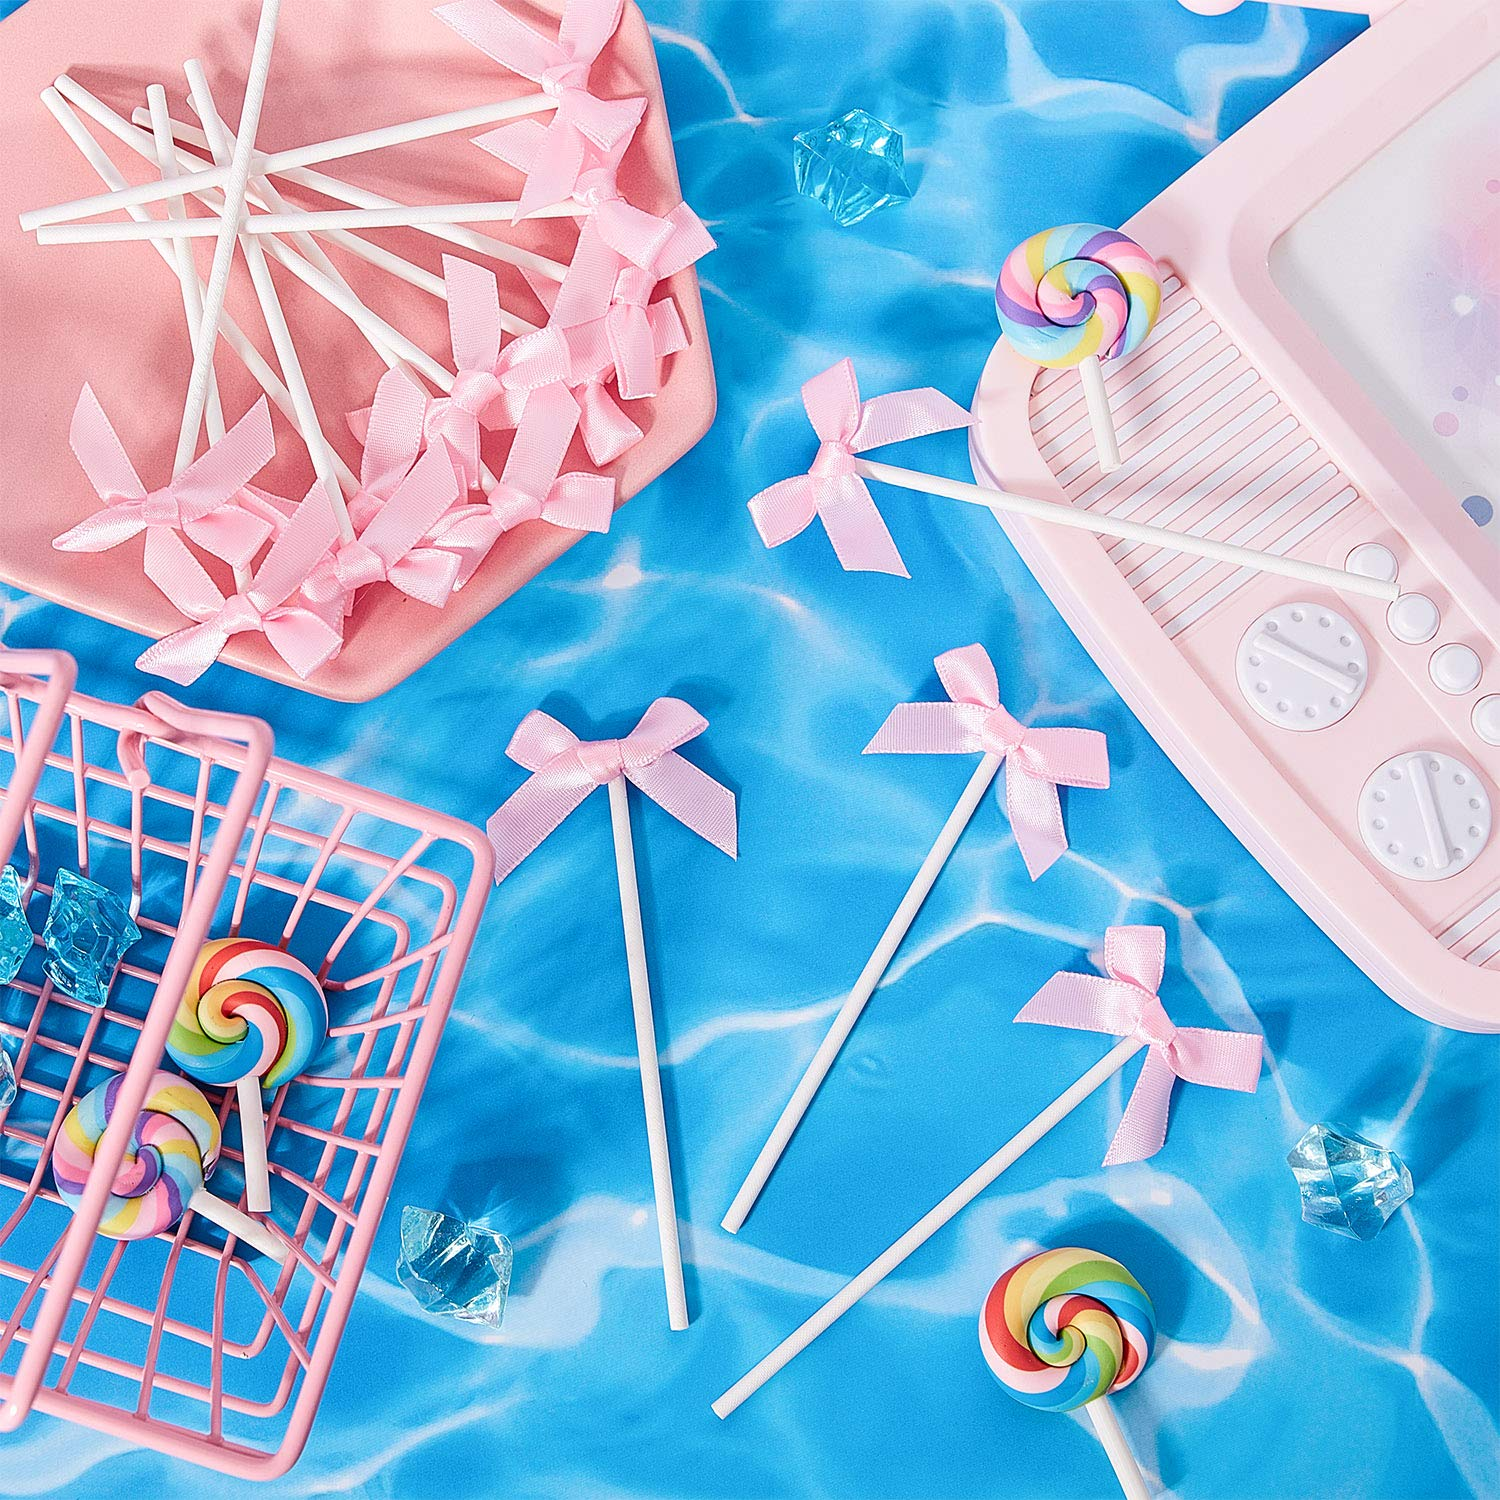 48 Pieces Ribbon Bow Cupcake Toppers Pink Bowknot Cake Toppers for Birthday Baby Shower Wedding Party Decoration Supply